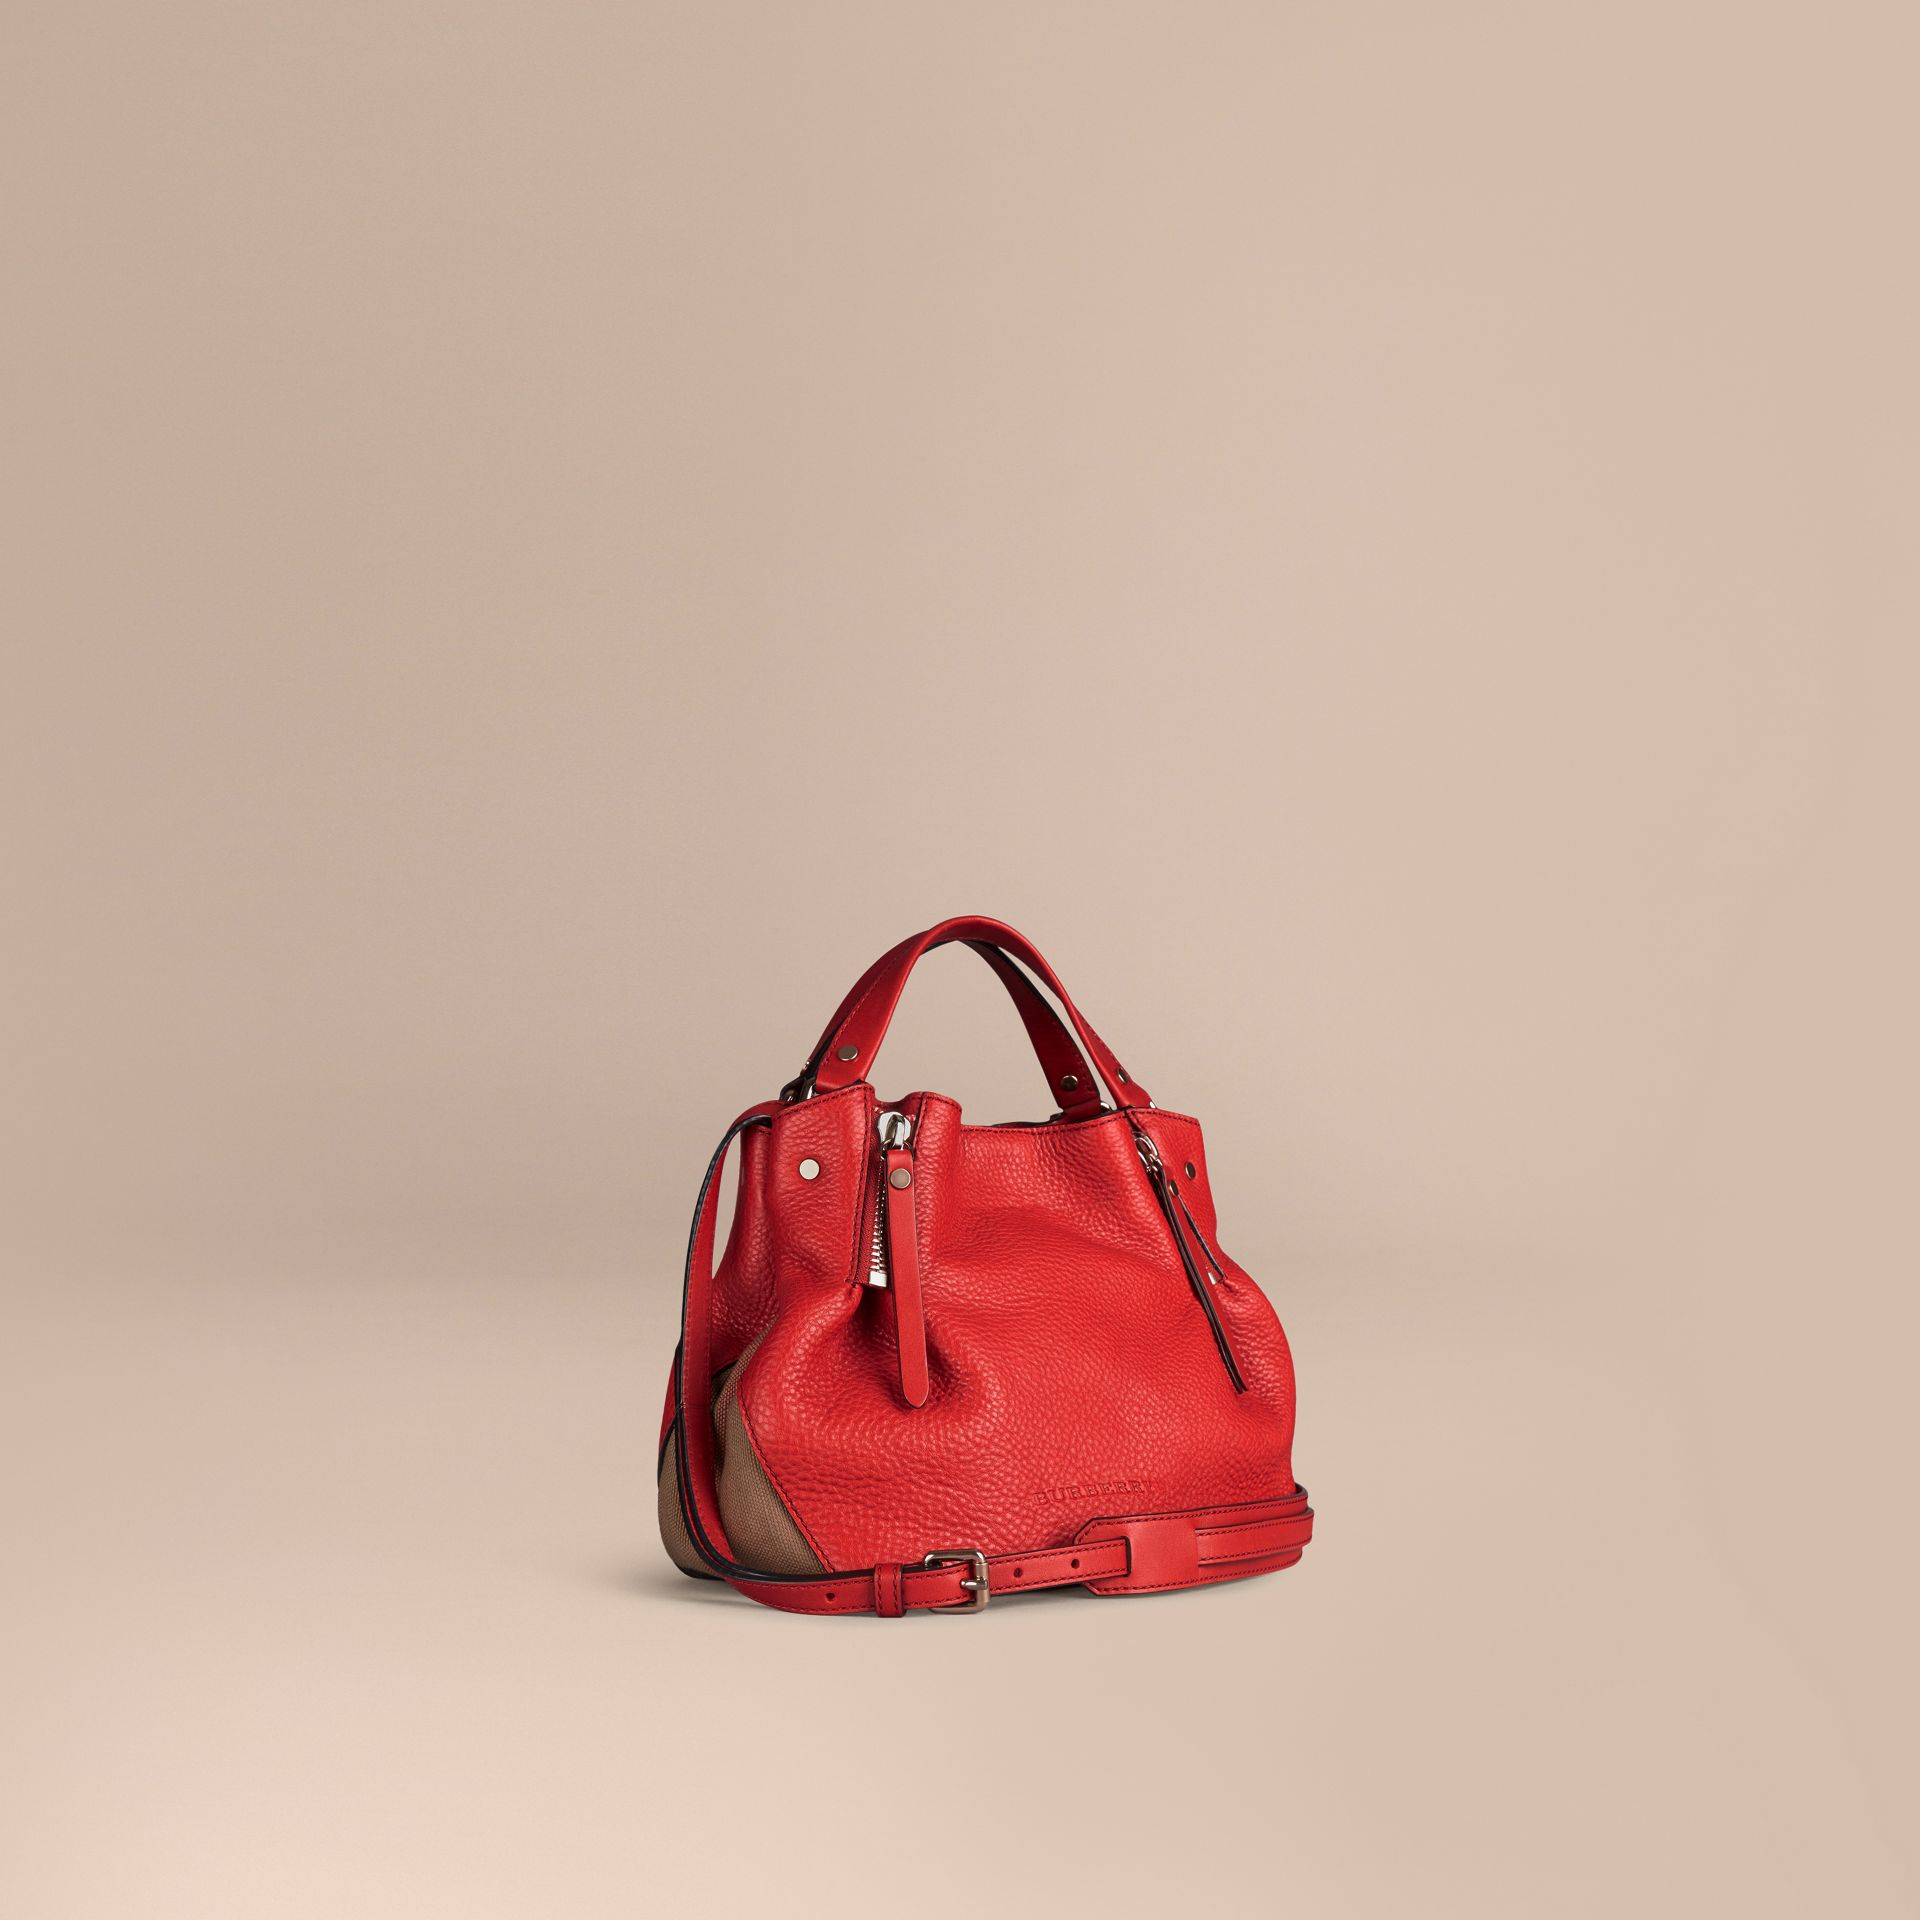 Cadmium red Small Check Detail Leather Tote Bag Cadmium Red - gallery image 1